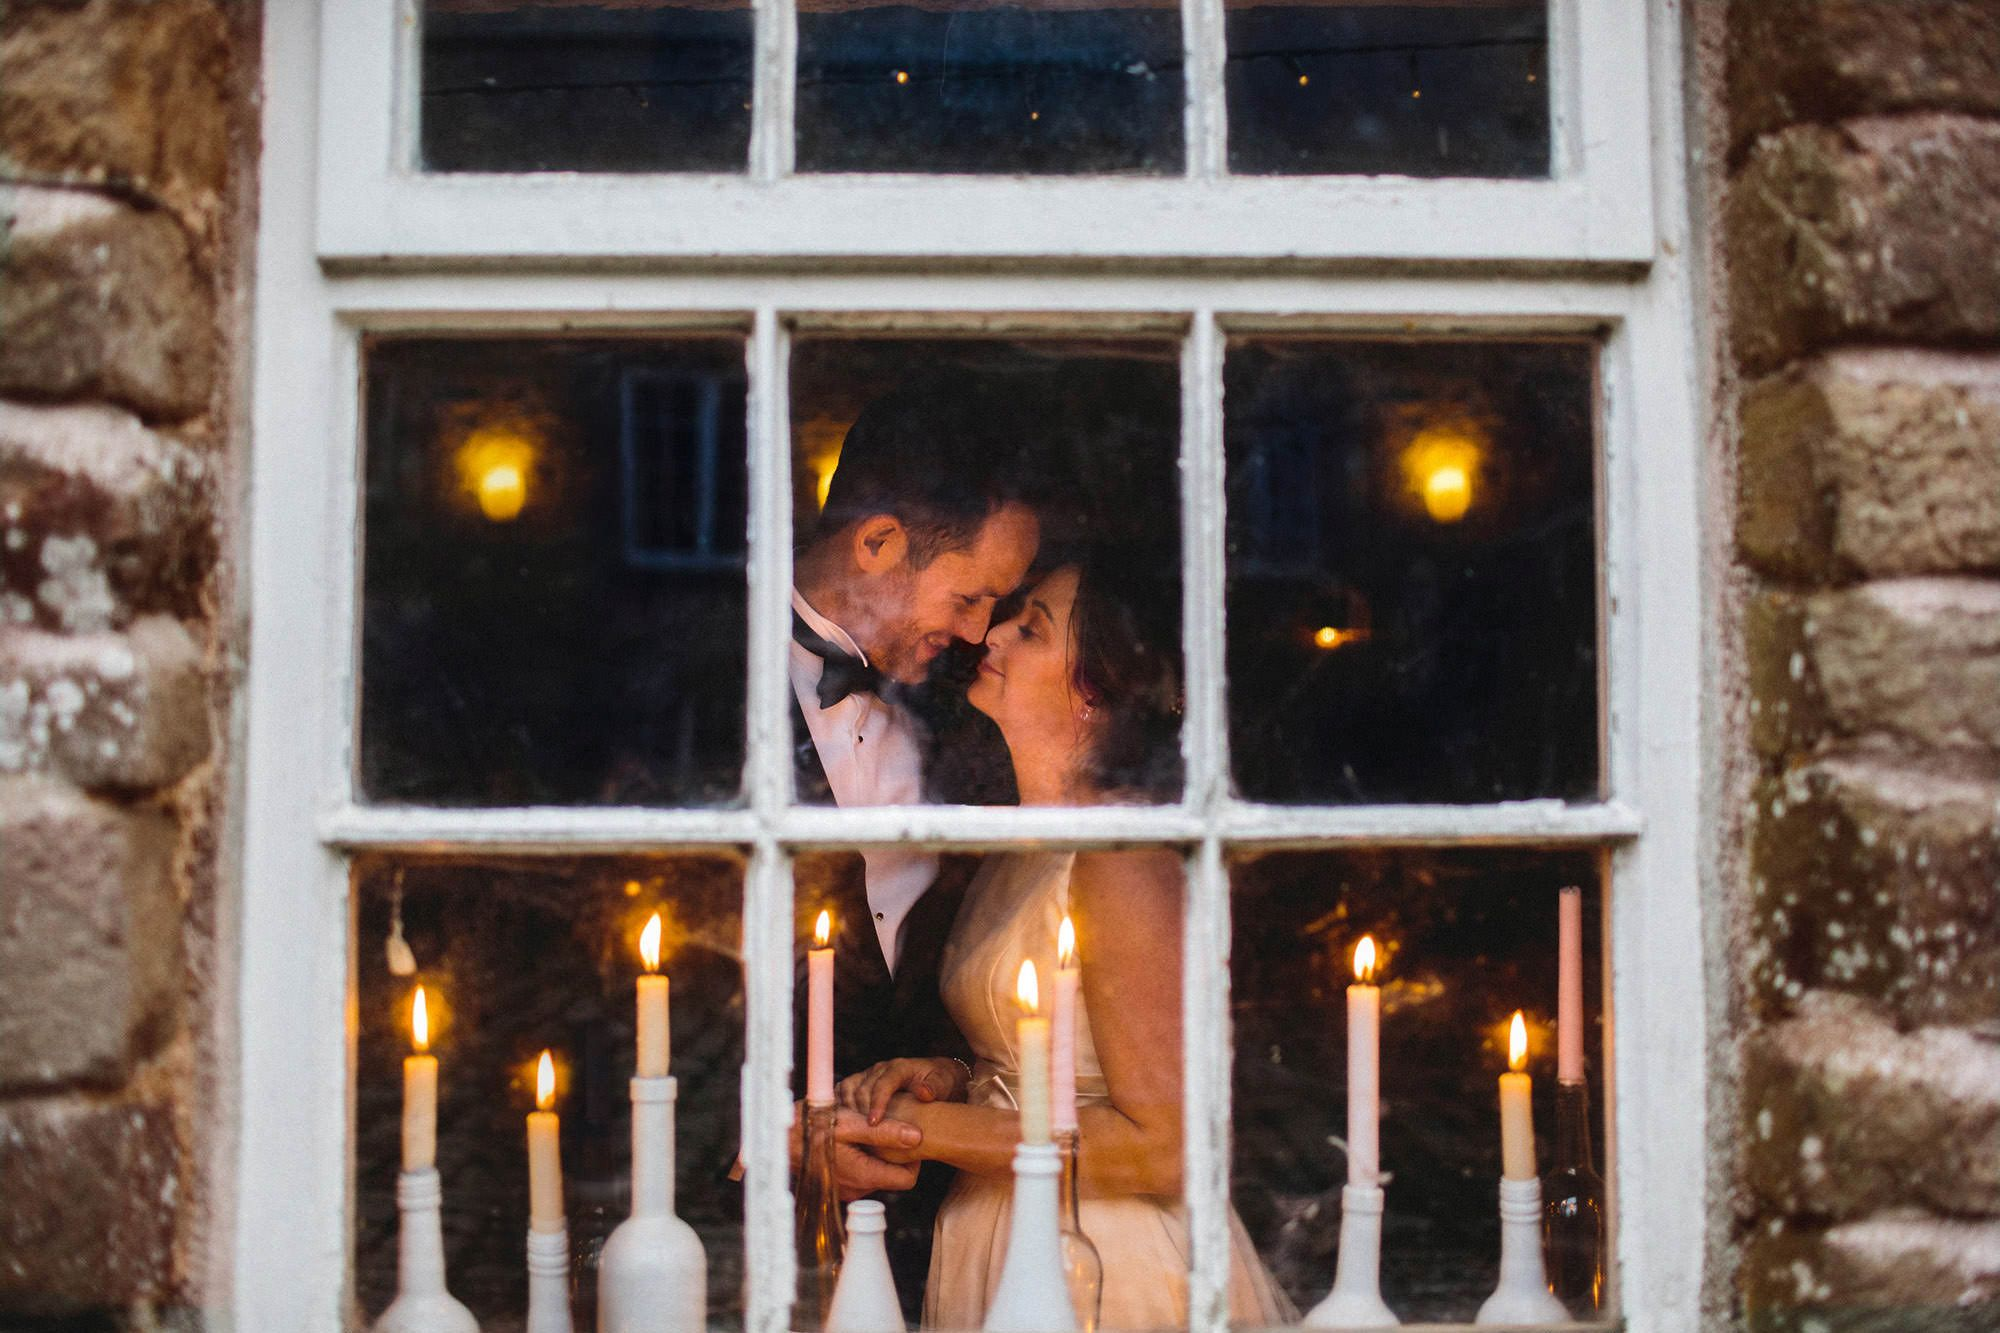 bride and groom behind window with candles - devon wedding photography by luna weddings